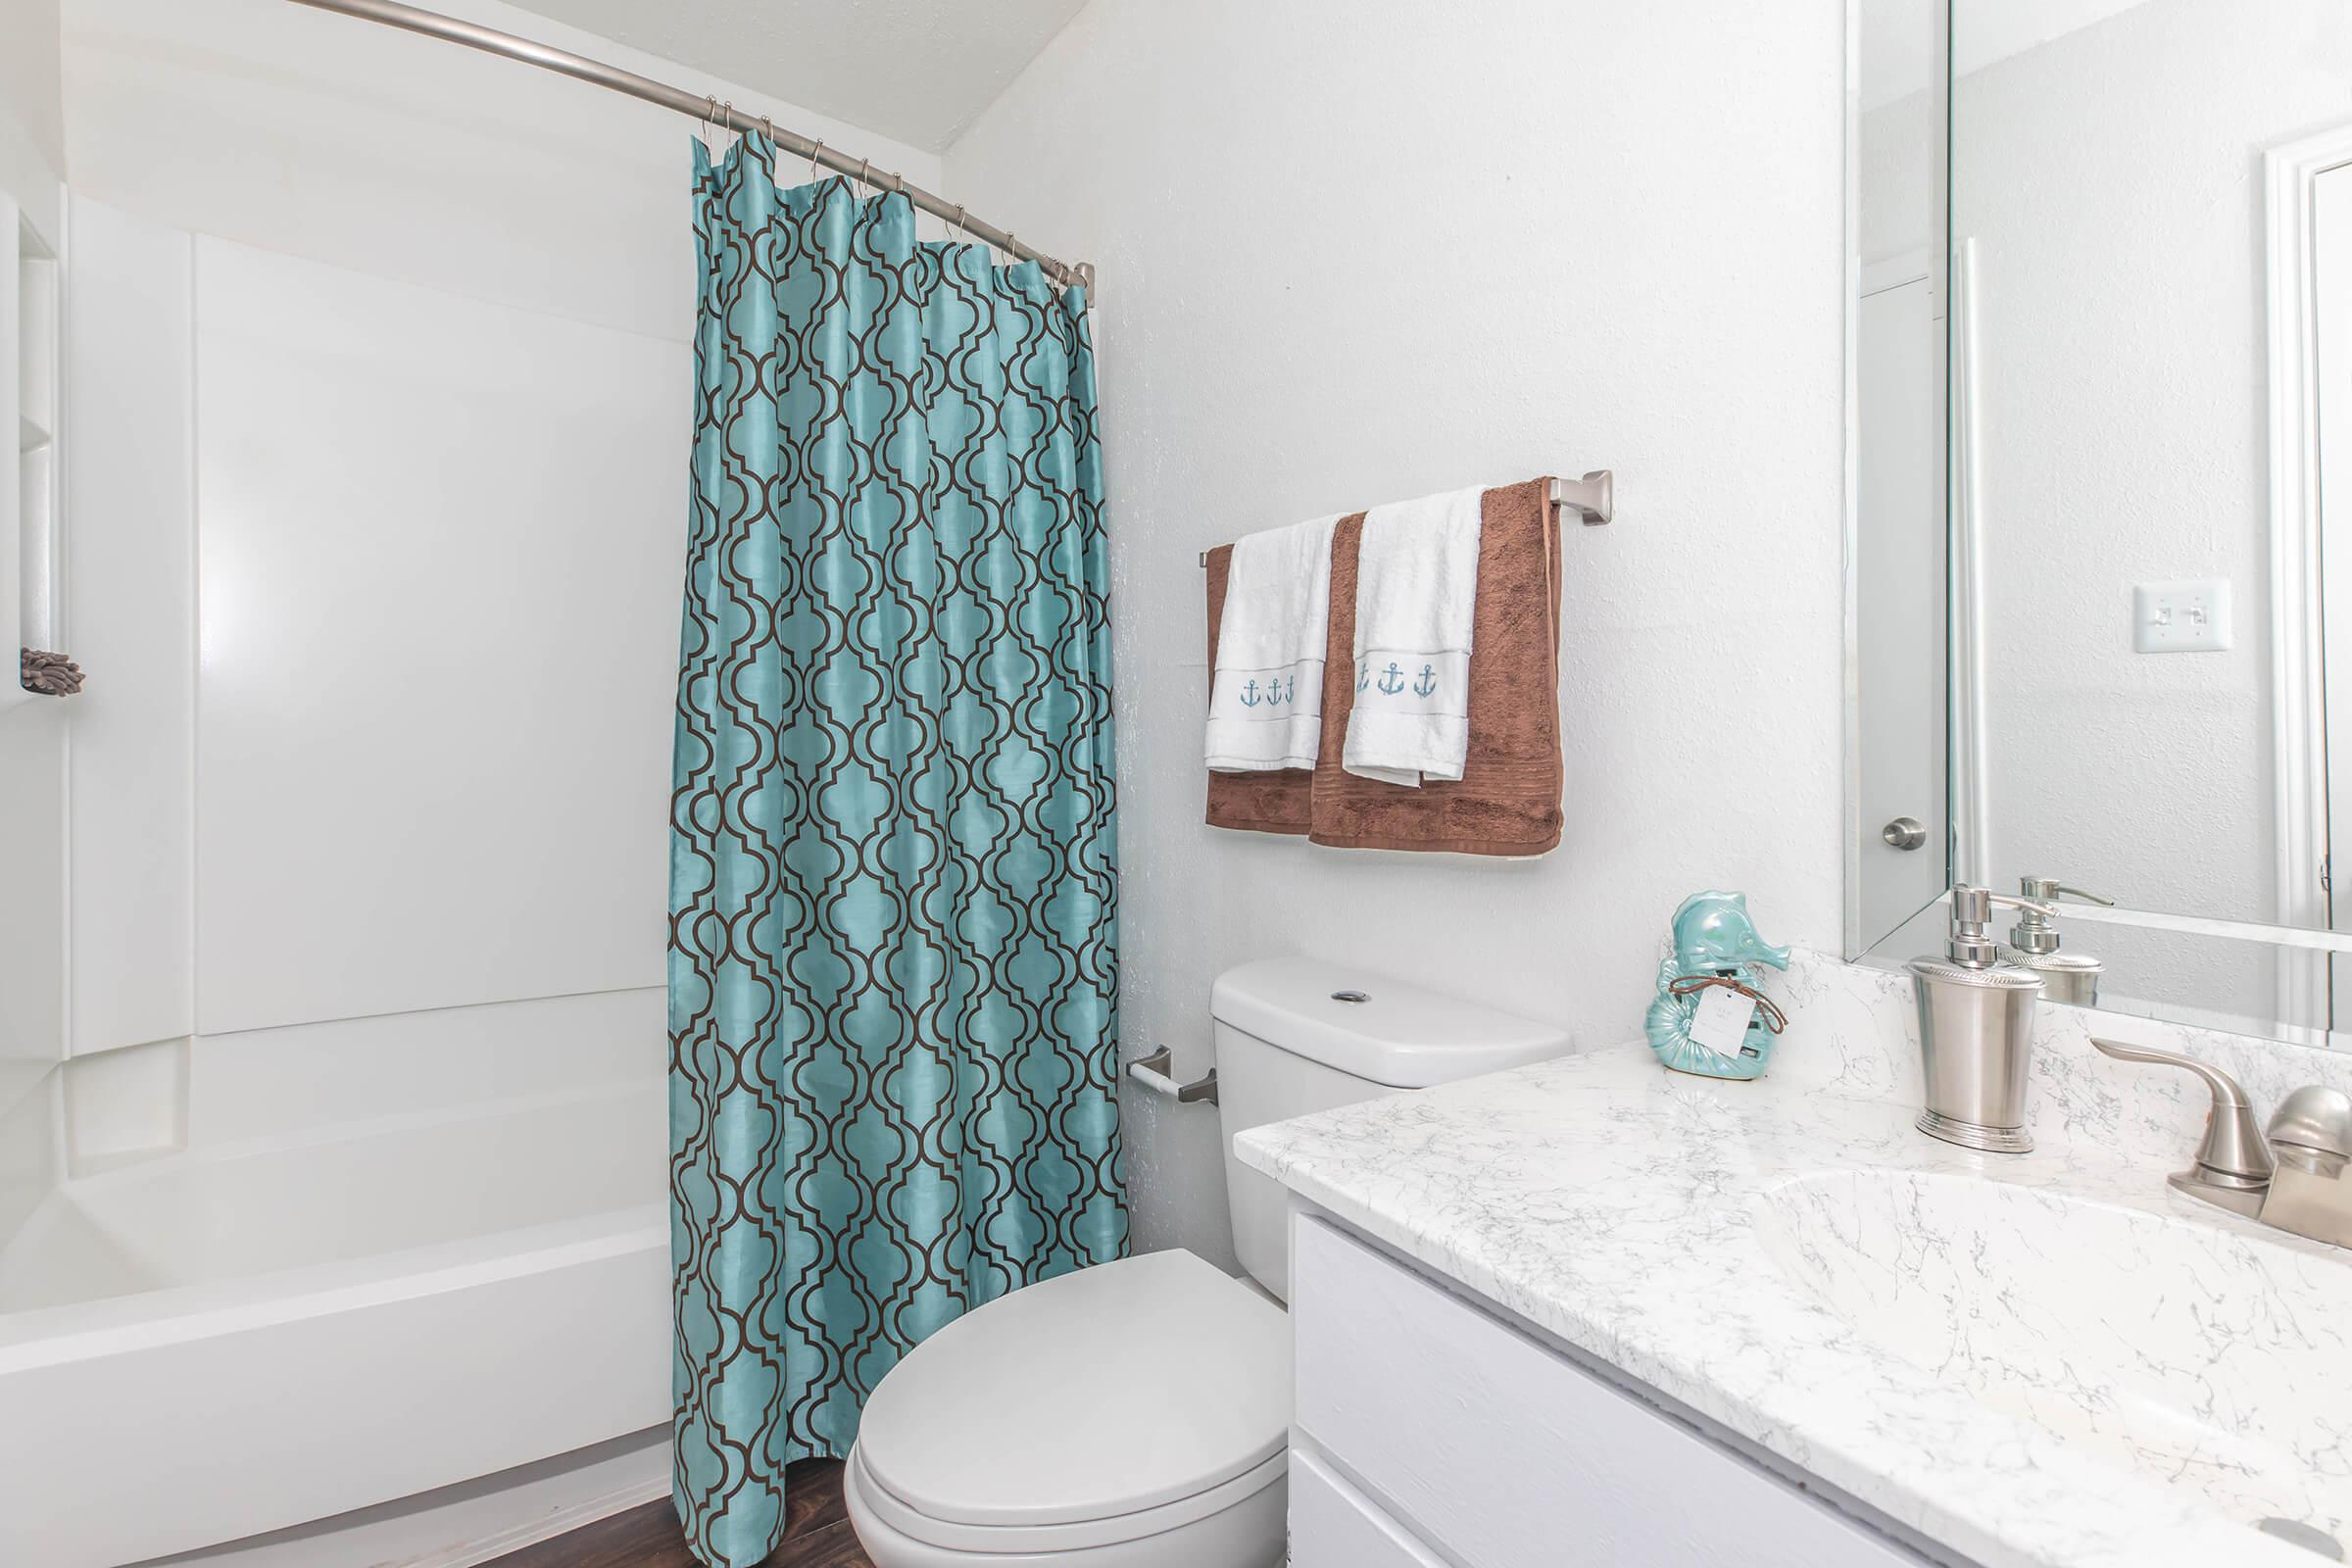 a room with a sink and a shower curtain